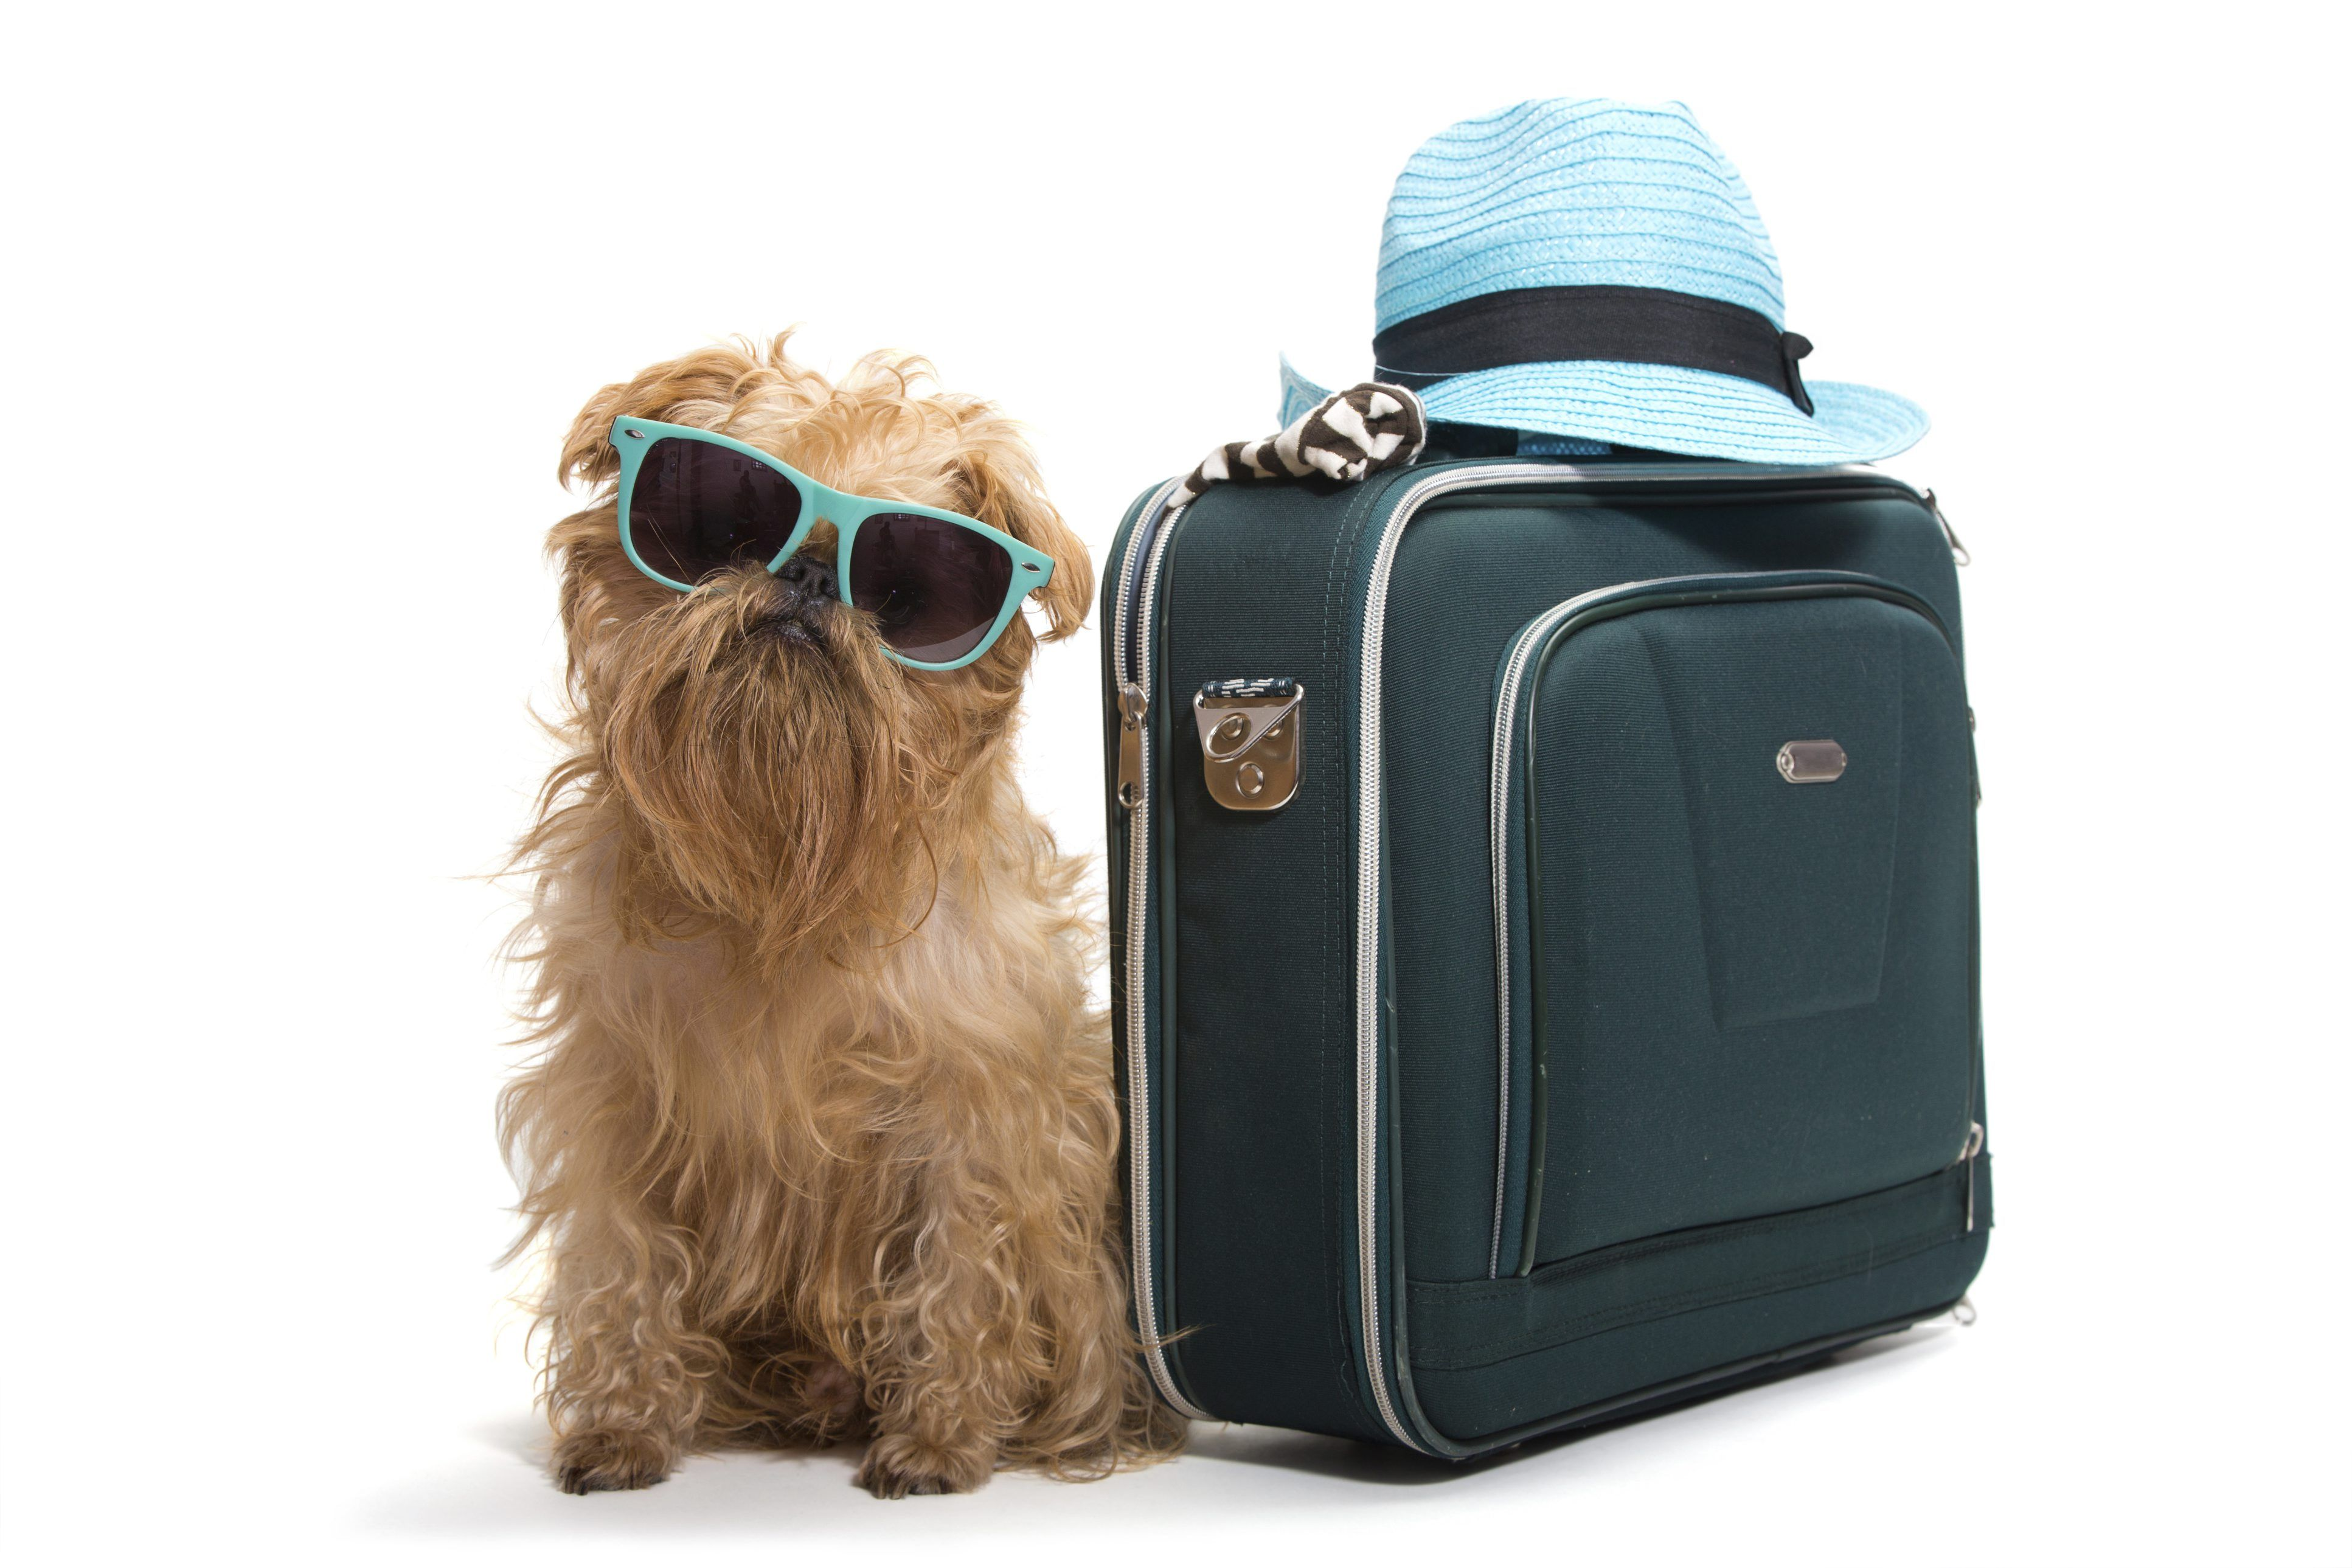 Hund p flyget for Traveling on a plane with a dog